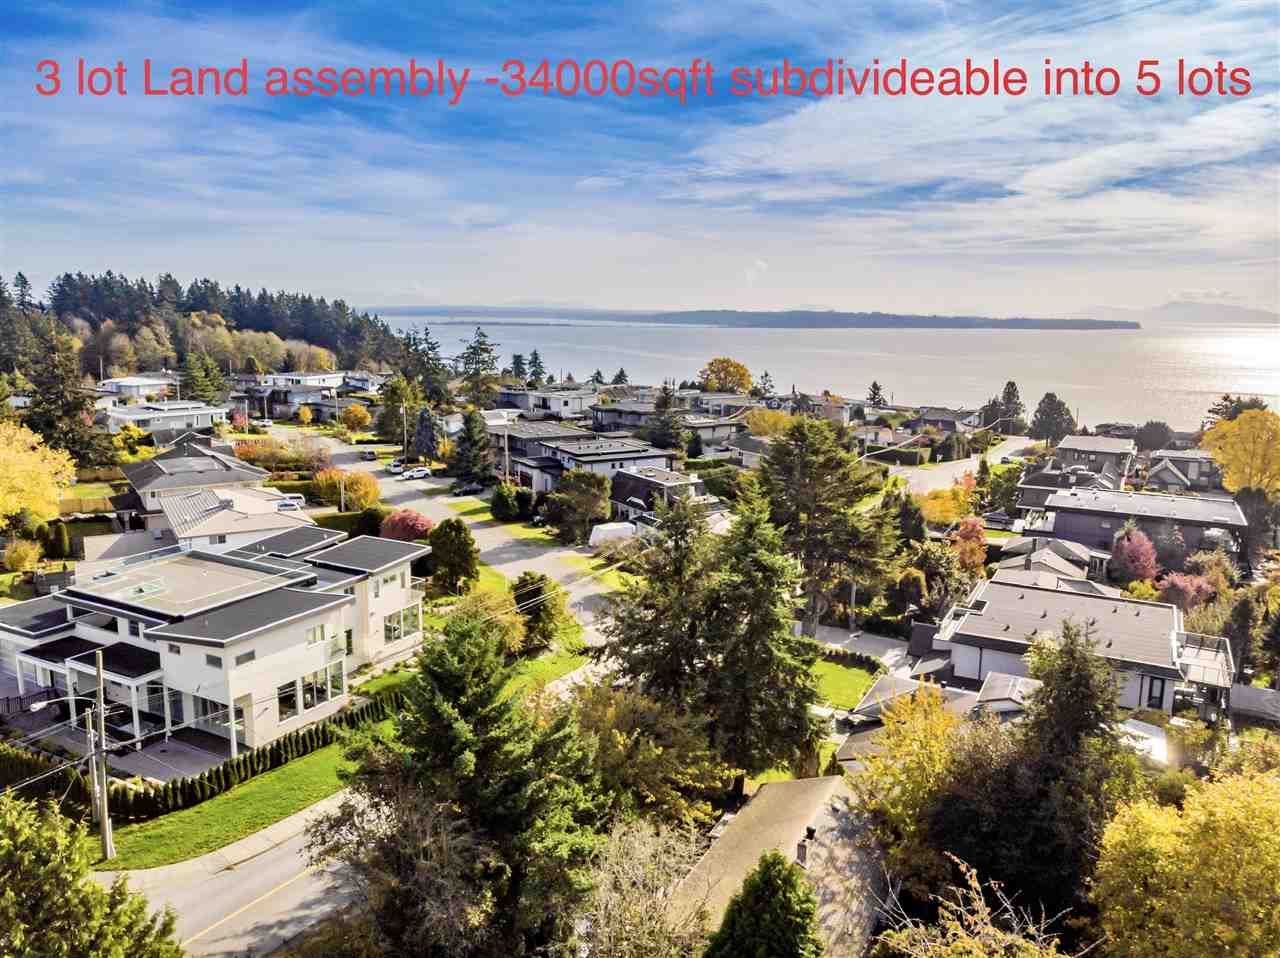 """Main Photo: 14376 NORTH BLUFF Road: White Rock House for sale in """"WEST WHITE ROCK"""" (South Surrey White Rock)  : MLS®# R2513653"""